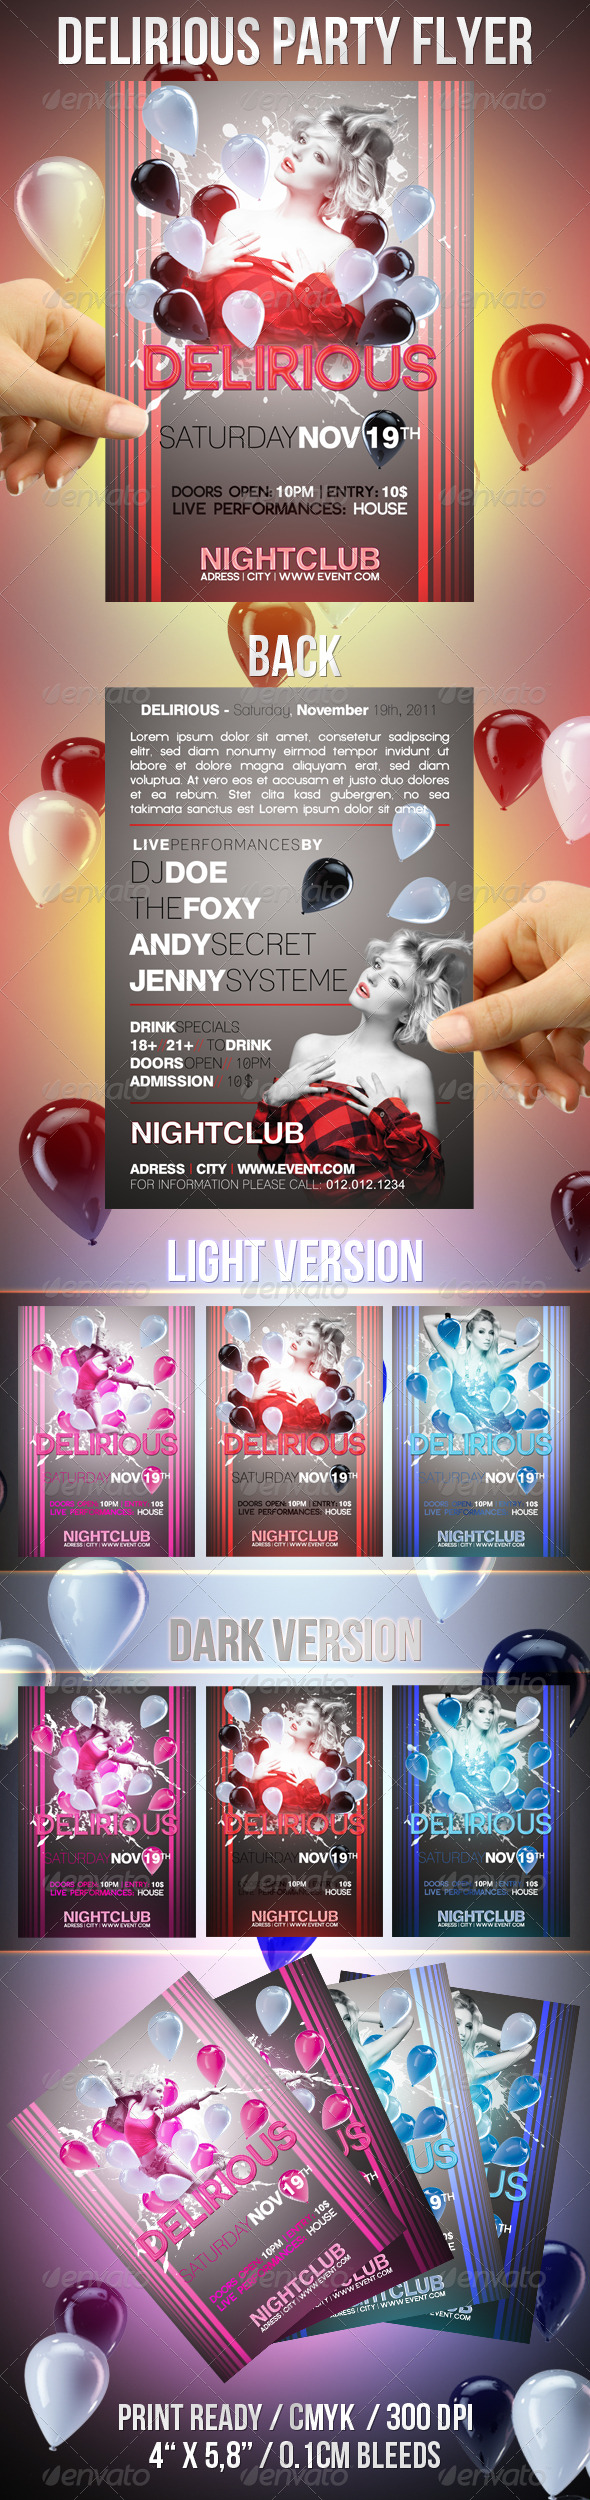 Delirious Party Flyer - Clubs & Parties Events